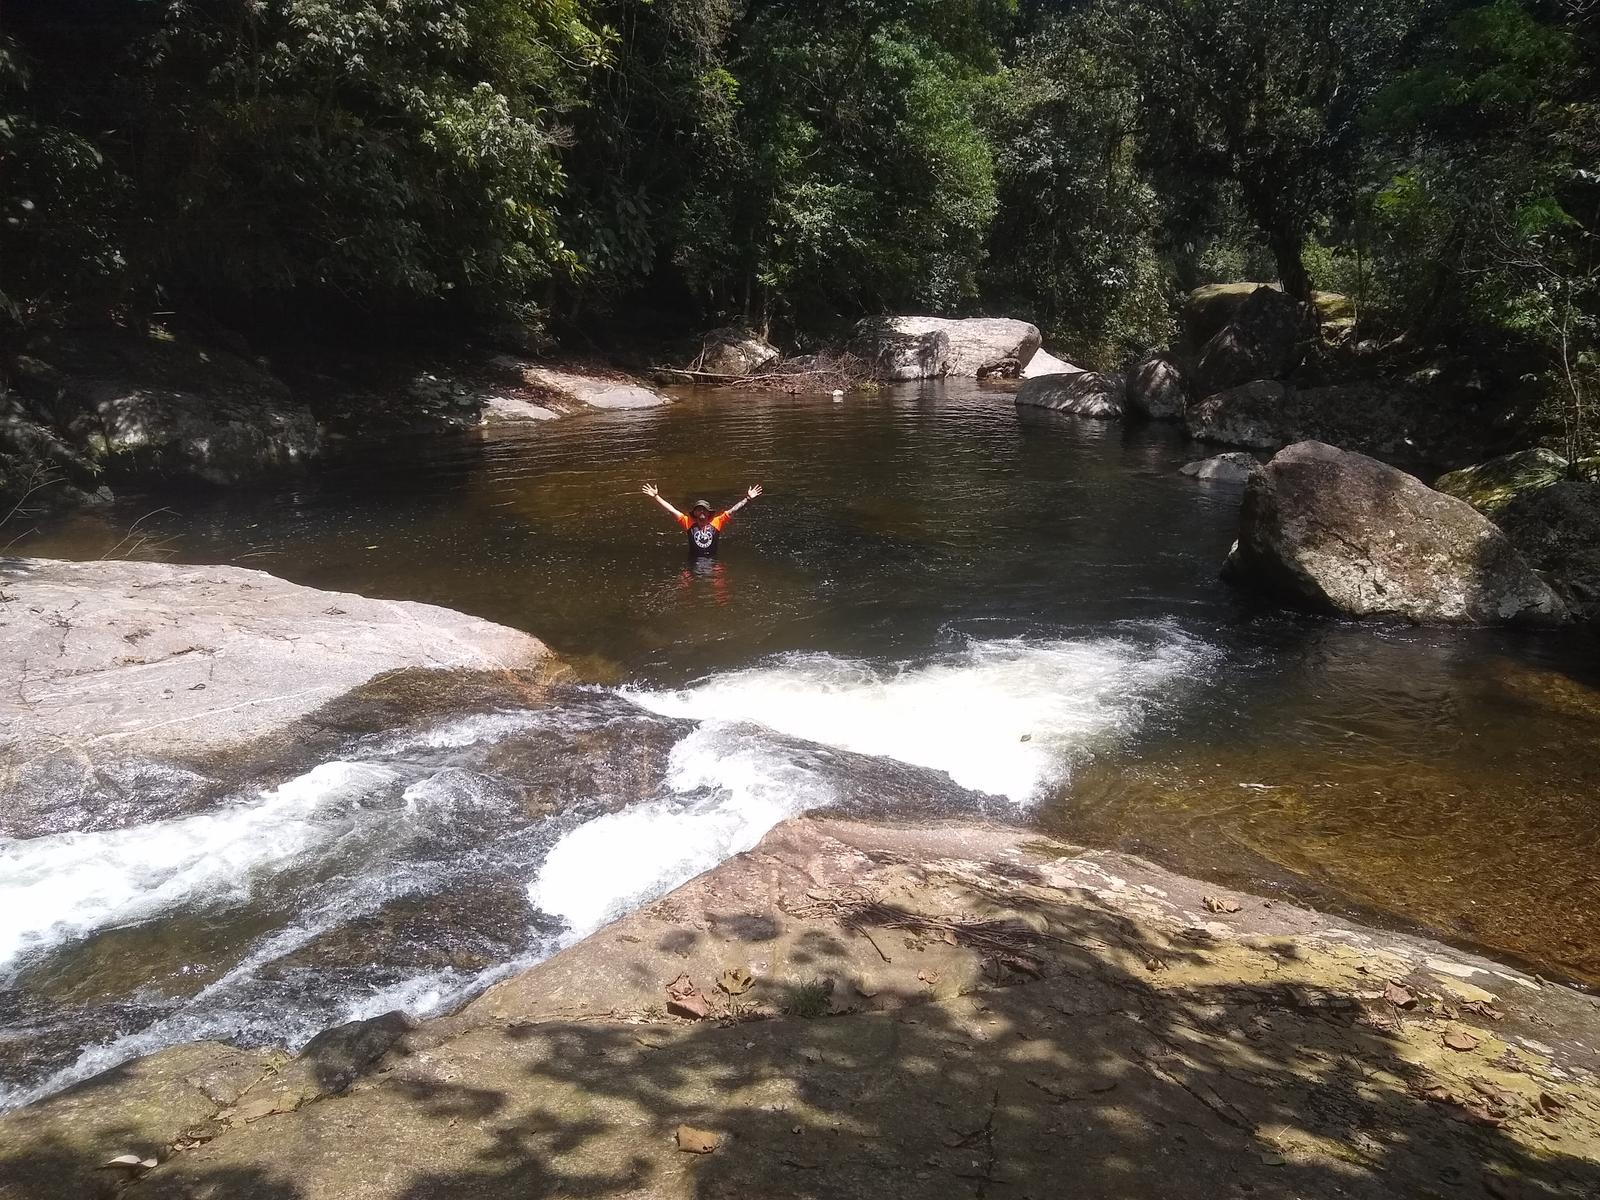 mynd af Travessia Nascentes do Rio Quilombo ⛺